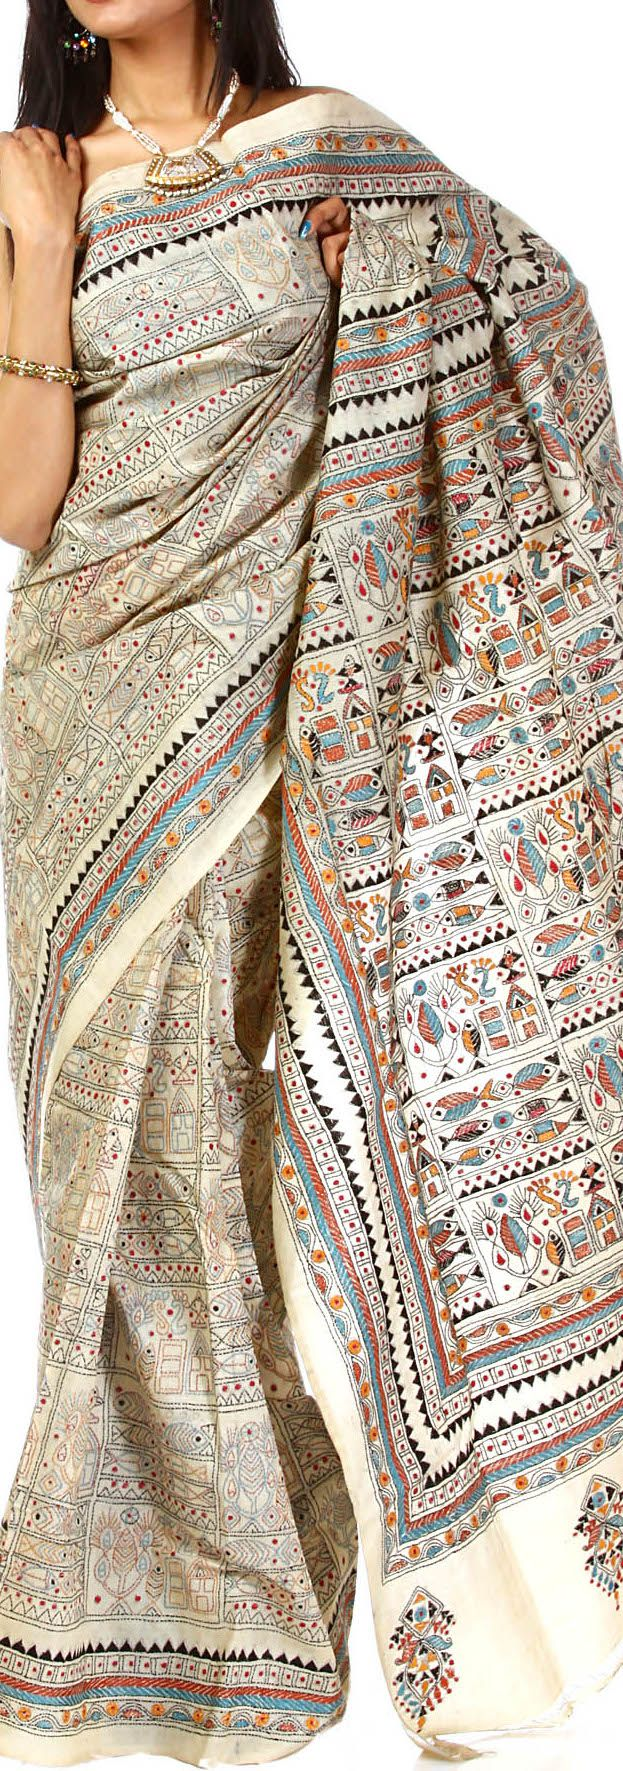 Kantha Stitch saree from Bengal. Traditionally this hand embroidery was done on quilts depicting scenes from folklore.